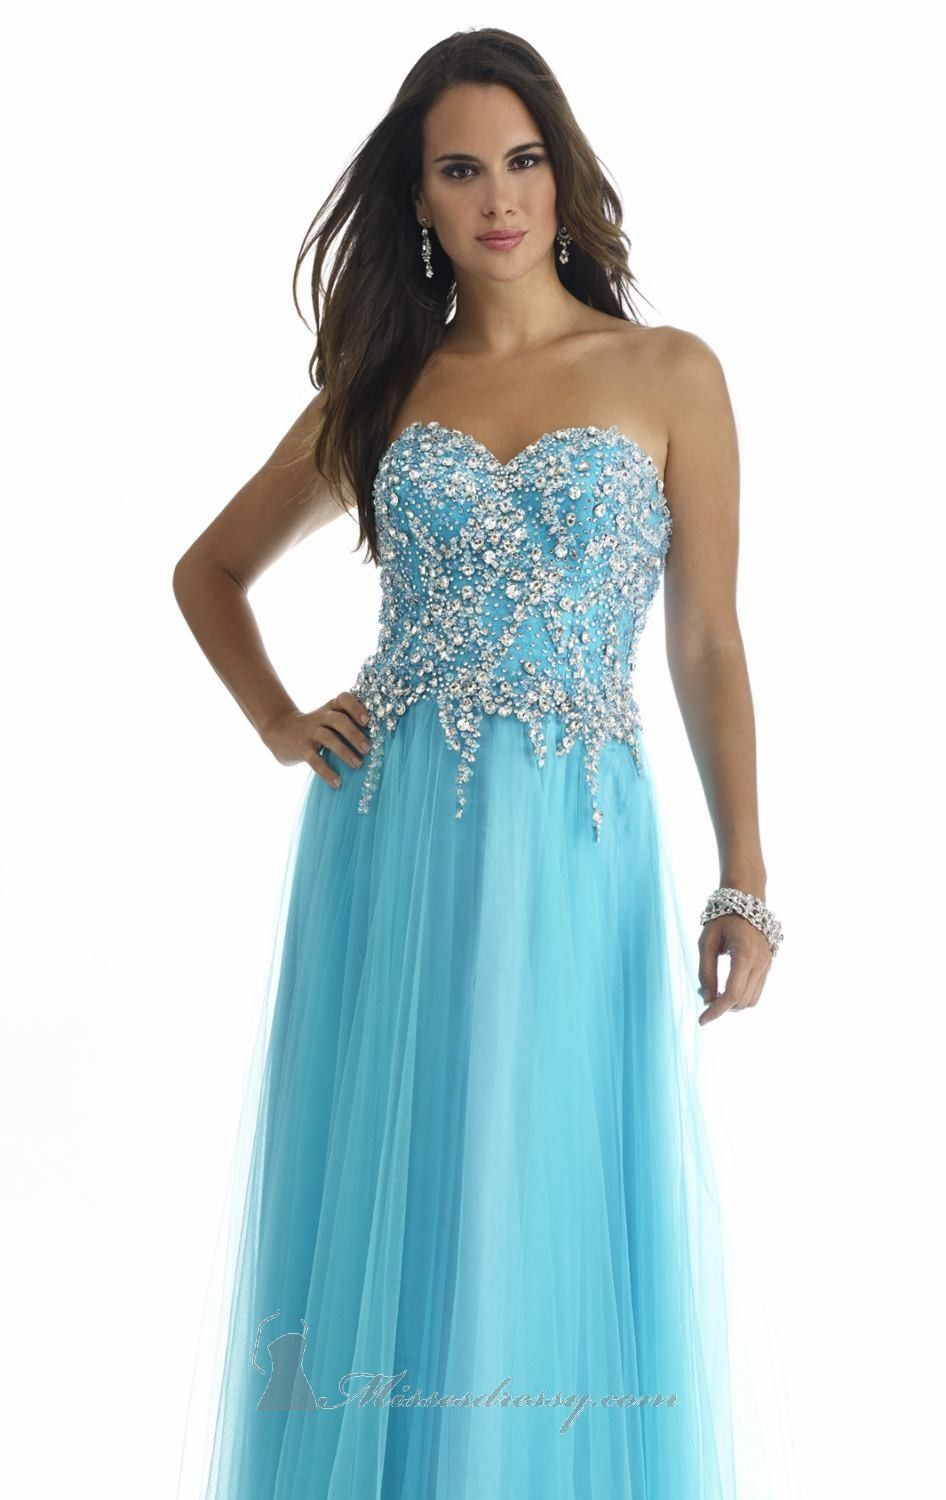 Beaded Chiffon Gown by Morrell Maxie 14437 Dress $284.5 Morrell Maxie Dresses